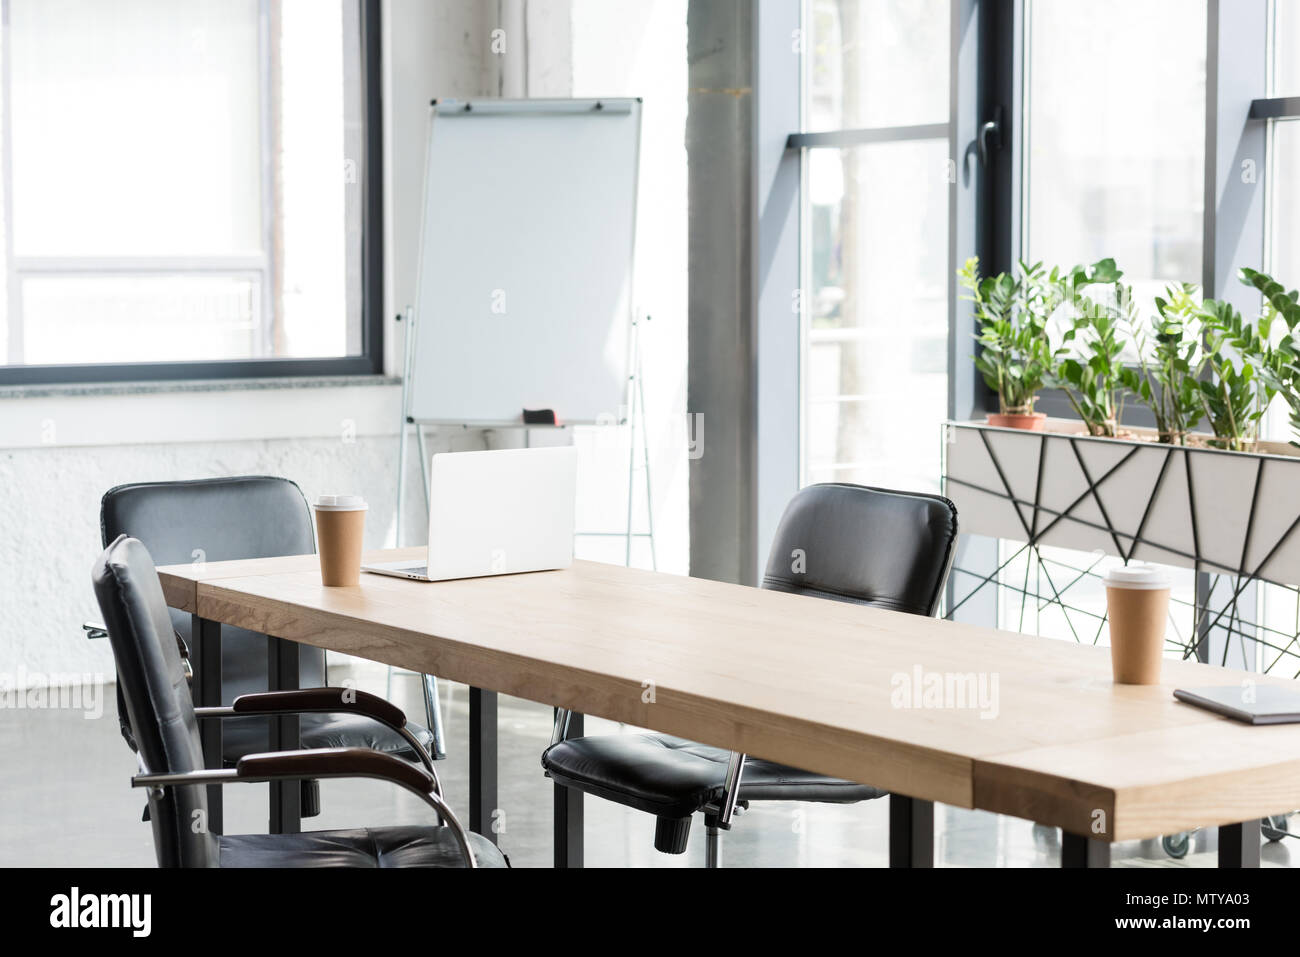 disposable coffee cups and laptop on wooden table in modern office - Stock Image